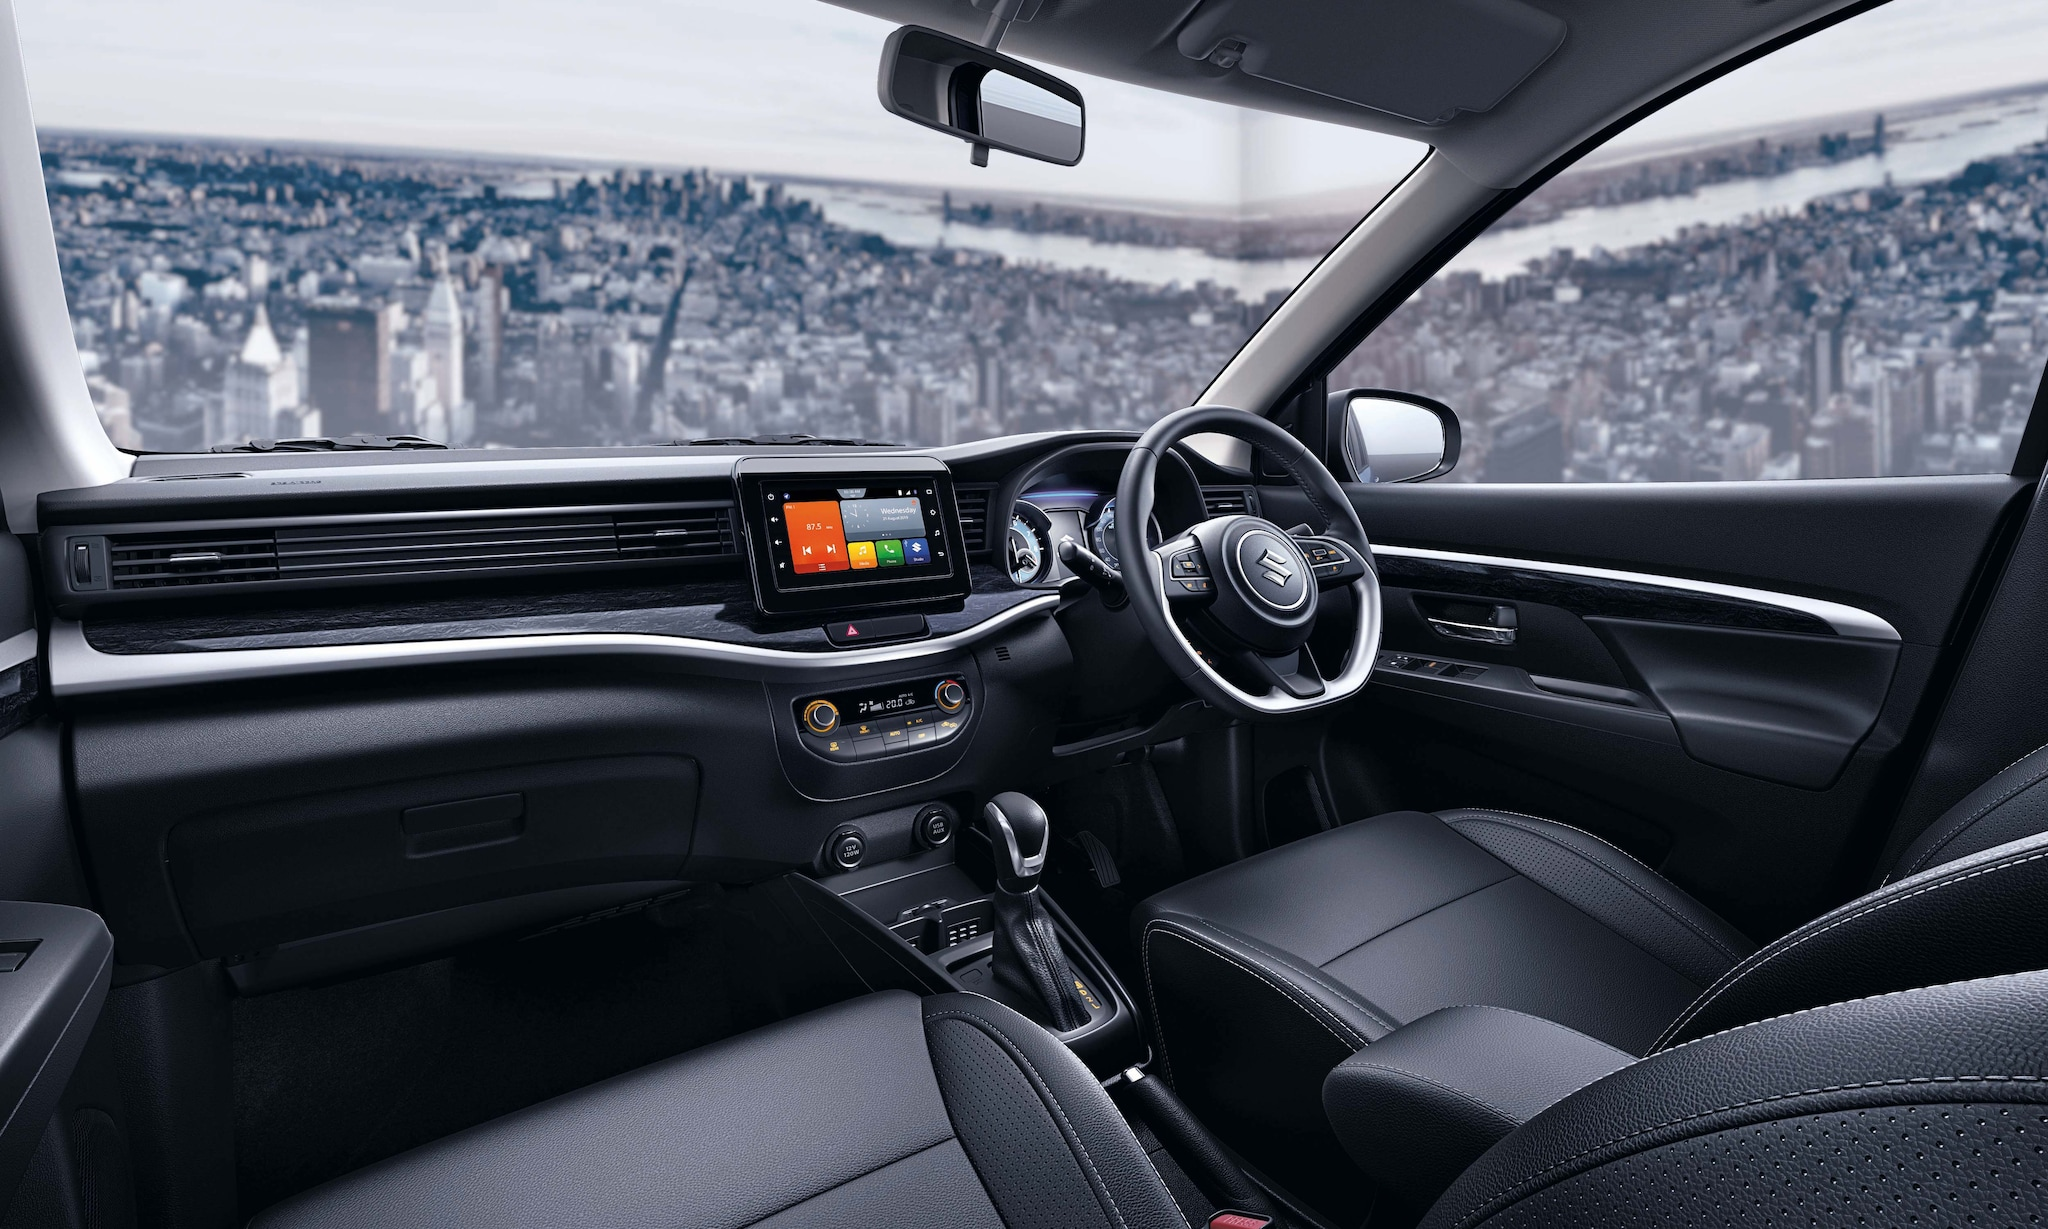 The all-black interiors, with Premium stone finish and rich silver accents sweeping across the cabin, impart a sophisticated touch. The slim wide instrument panel emphasizes the width of the car, adding to the overall feel of space and carrying forward the exterior design language. The leather-wrapped flat-bottom steering wheel with easy-access controls and cruise control switches further adds convenience to style.